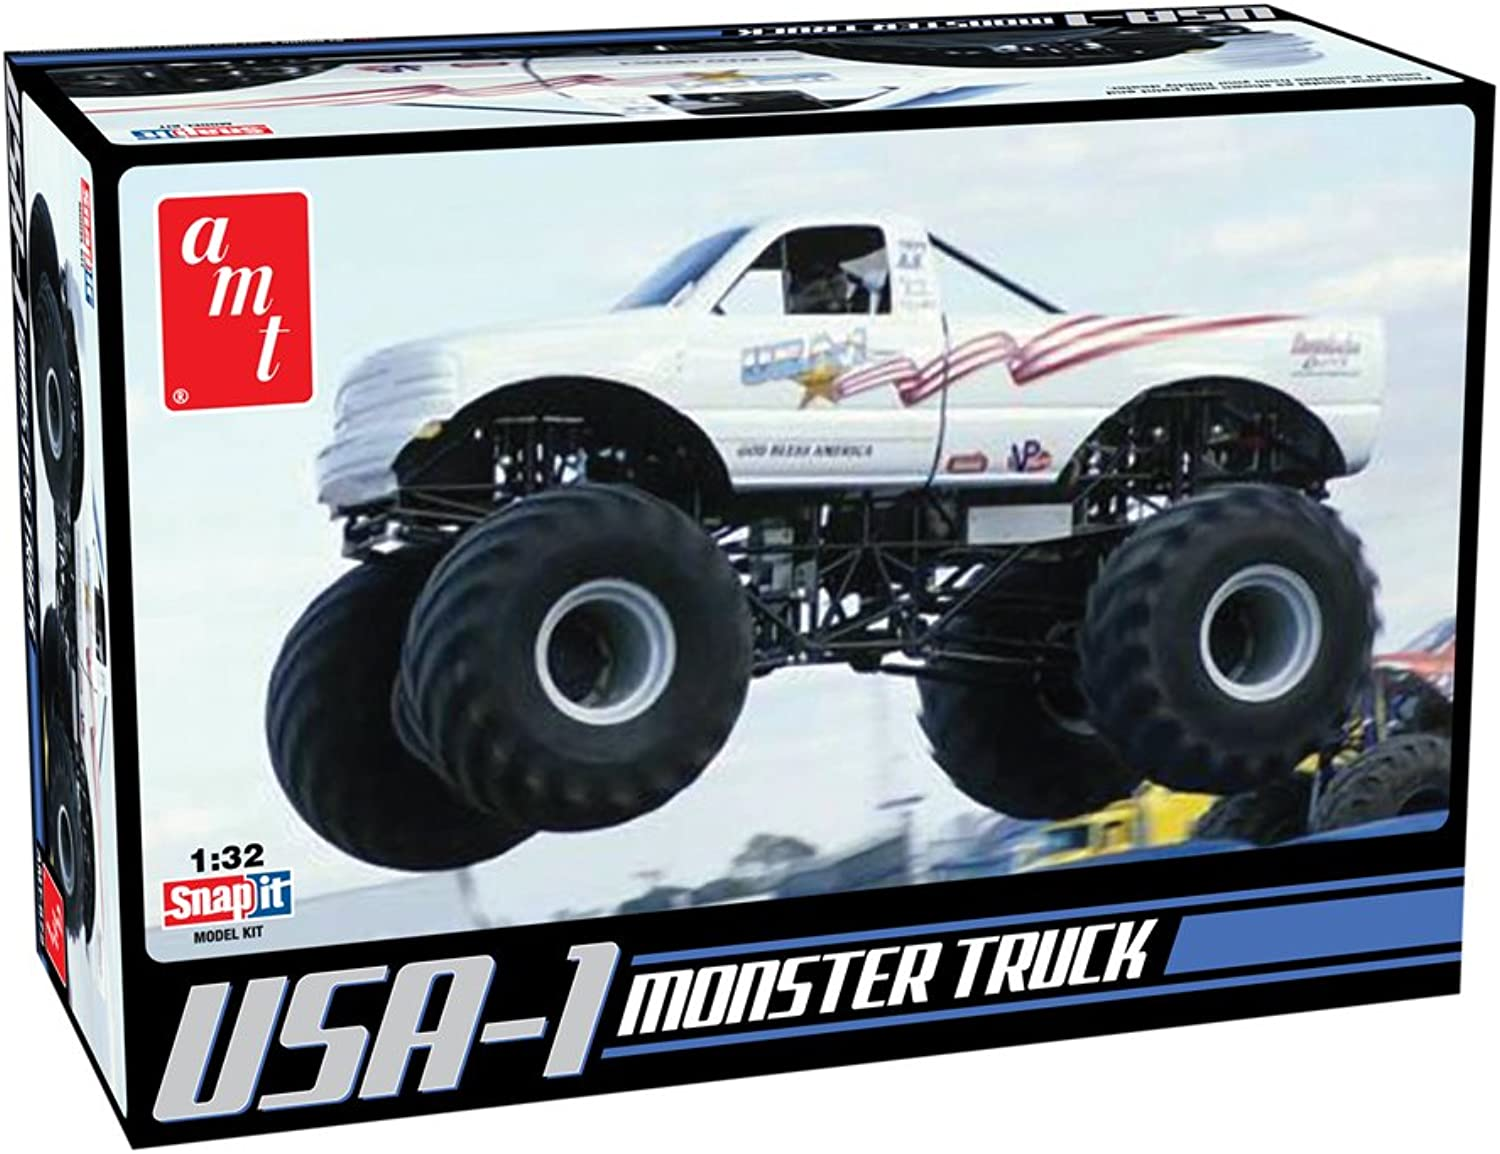 AMT AMT672 1 25 USA1 4X4 Monster Truck with New DecalsSNAP KIT